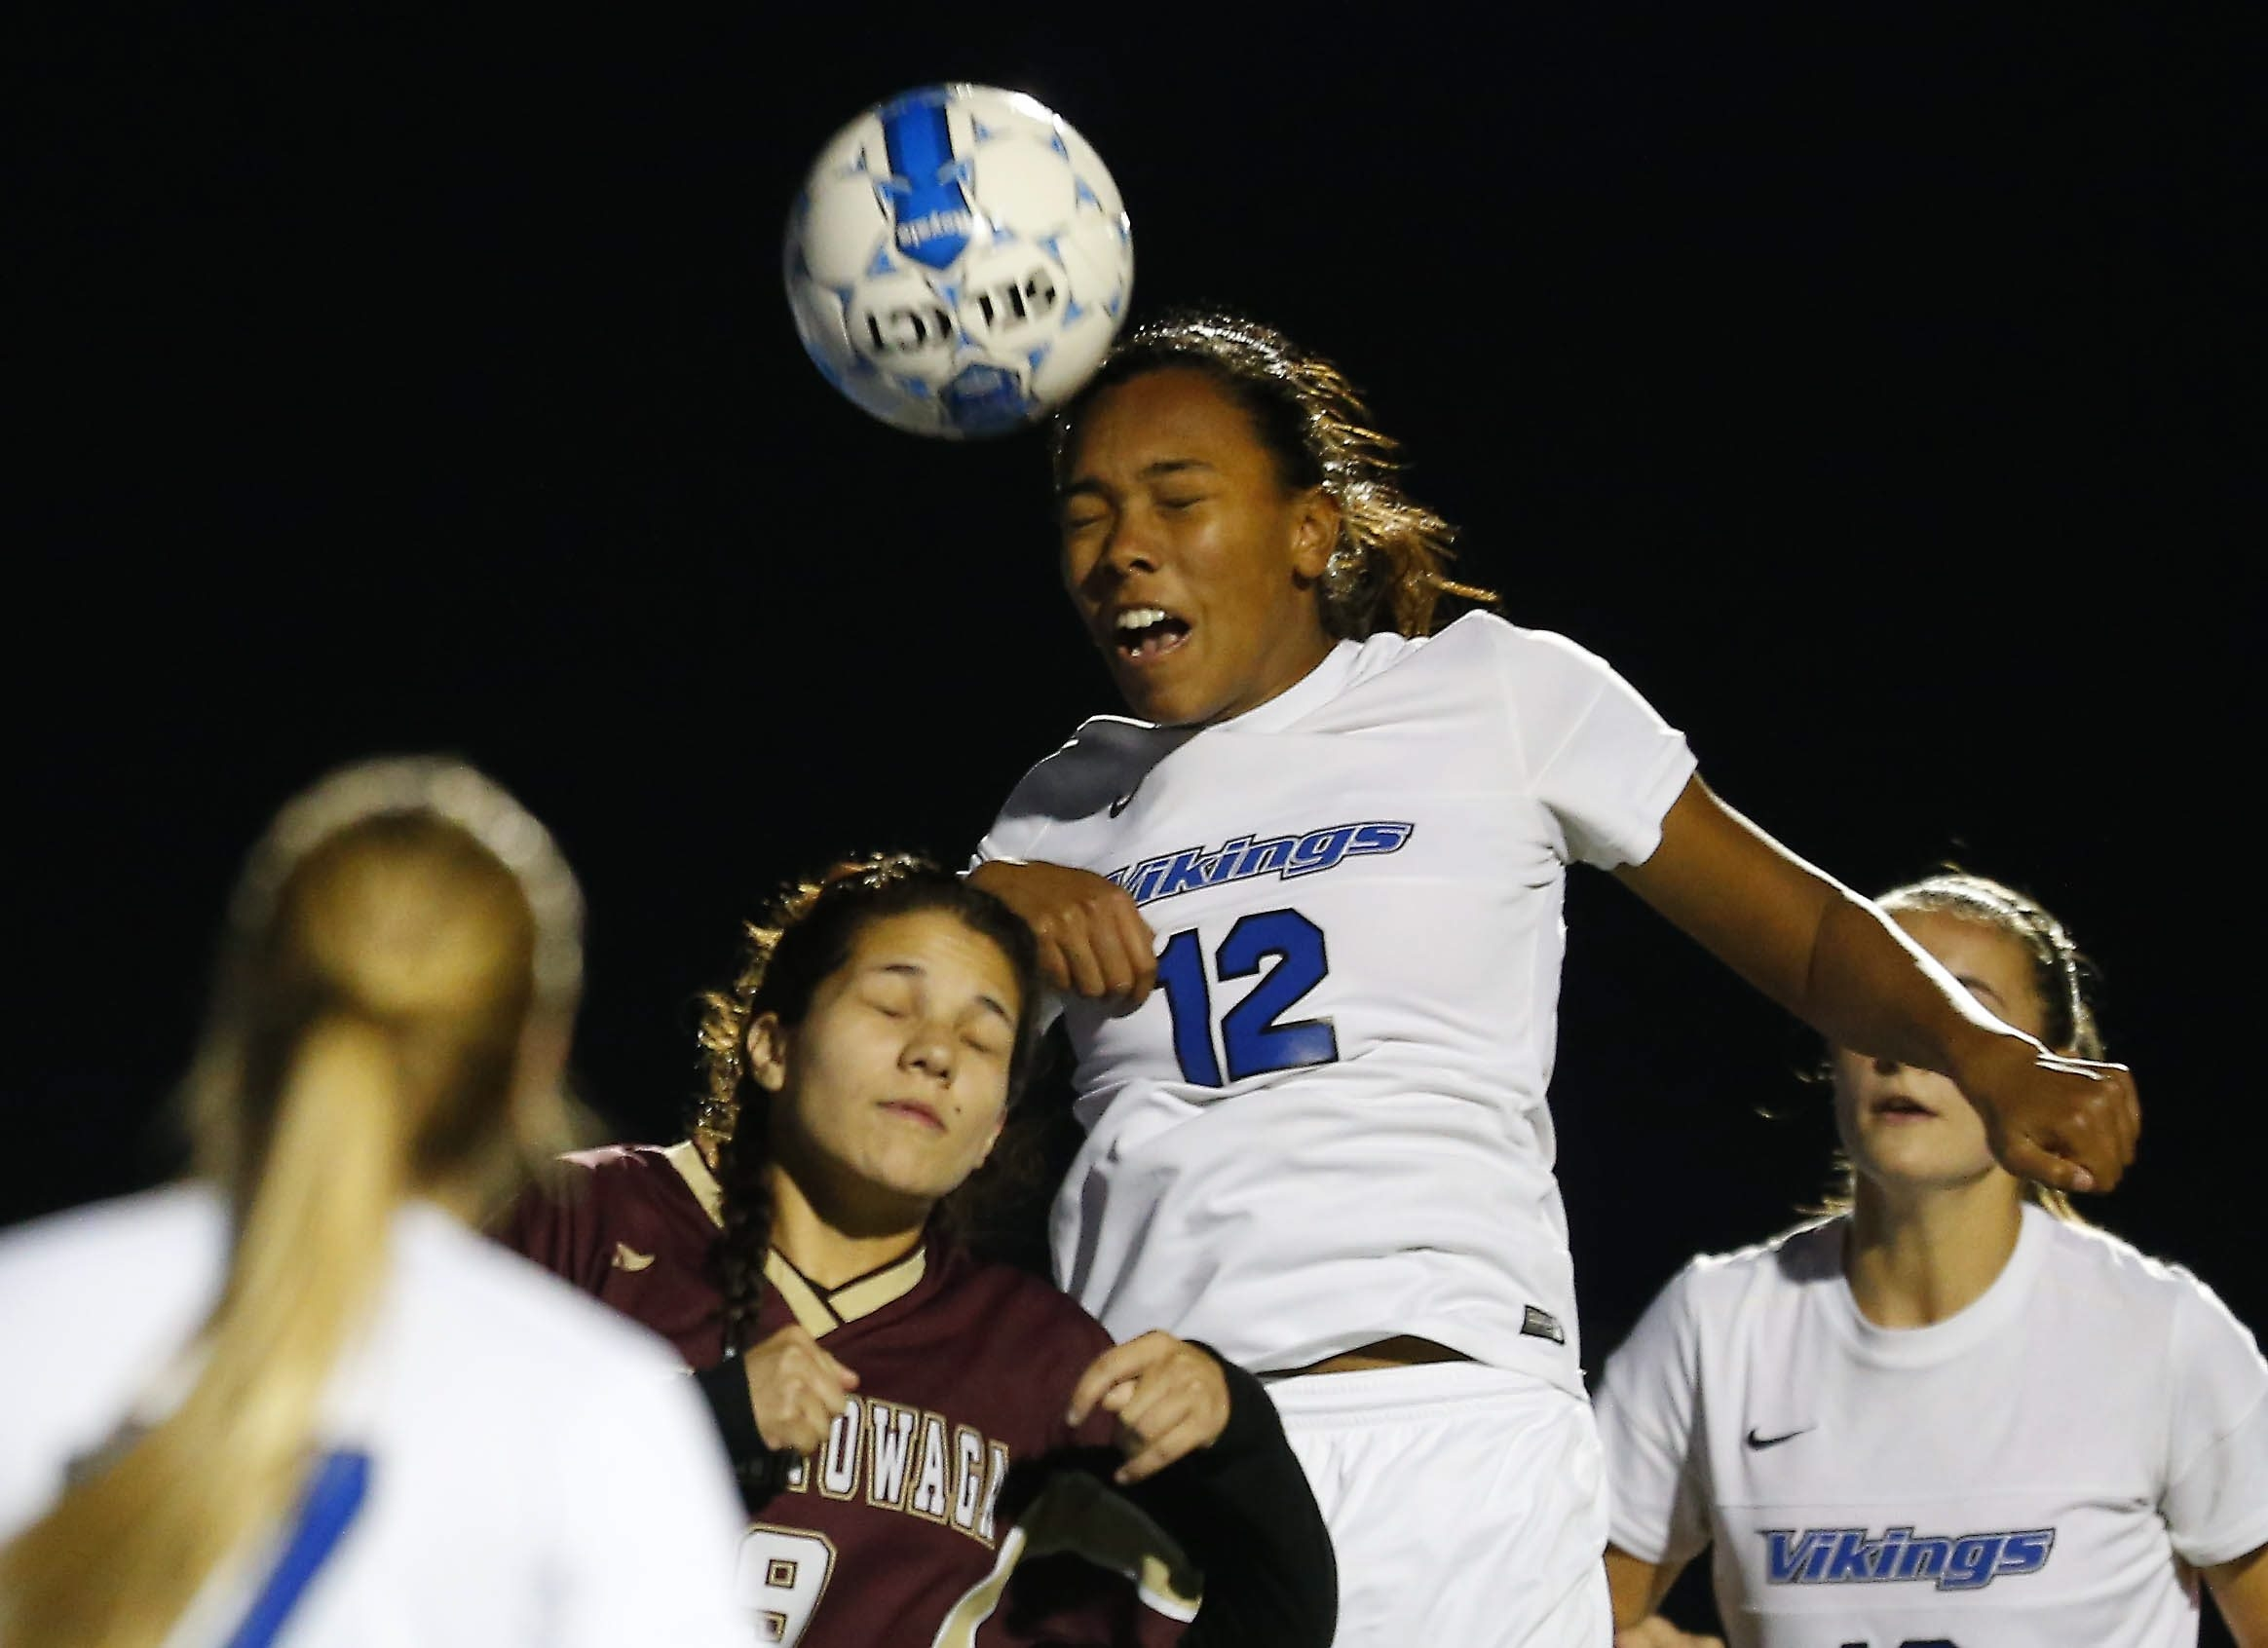 Grand Island's Tiffany Melendez goes for a header over Cheektowaga's Lan Le in their sectional prequarterfinal girls soccer game Tuesday at Grand Island.